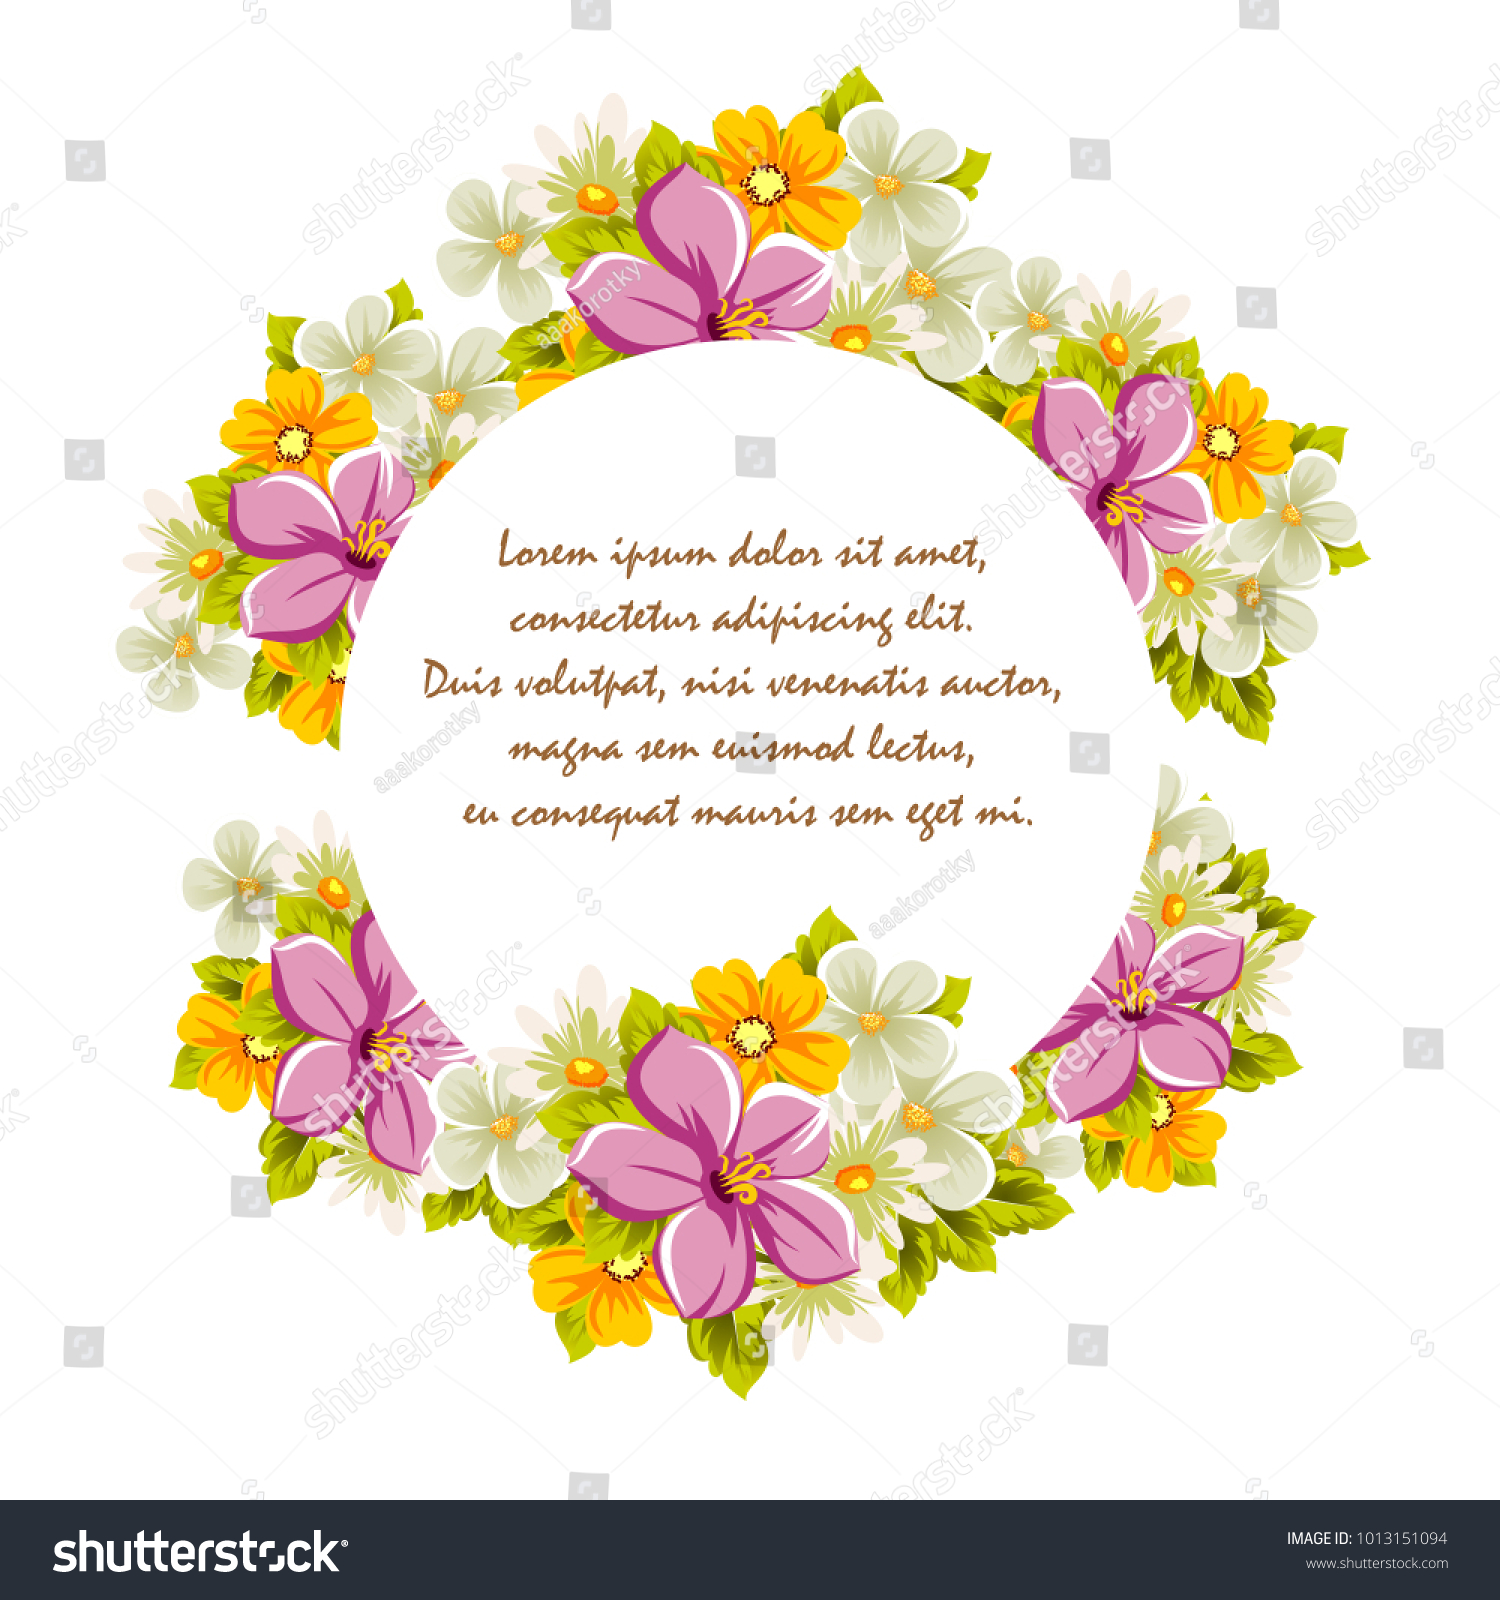 Beautiful frames for your text from the flowers for design id 1013151094 izmirmasajfo